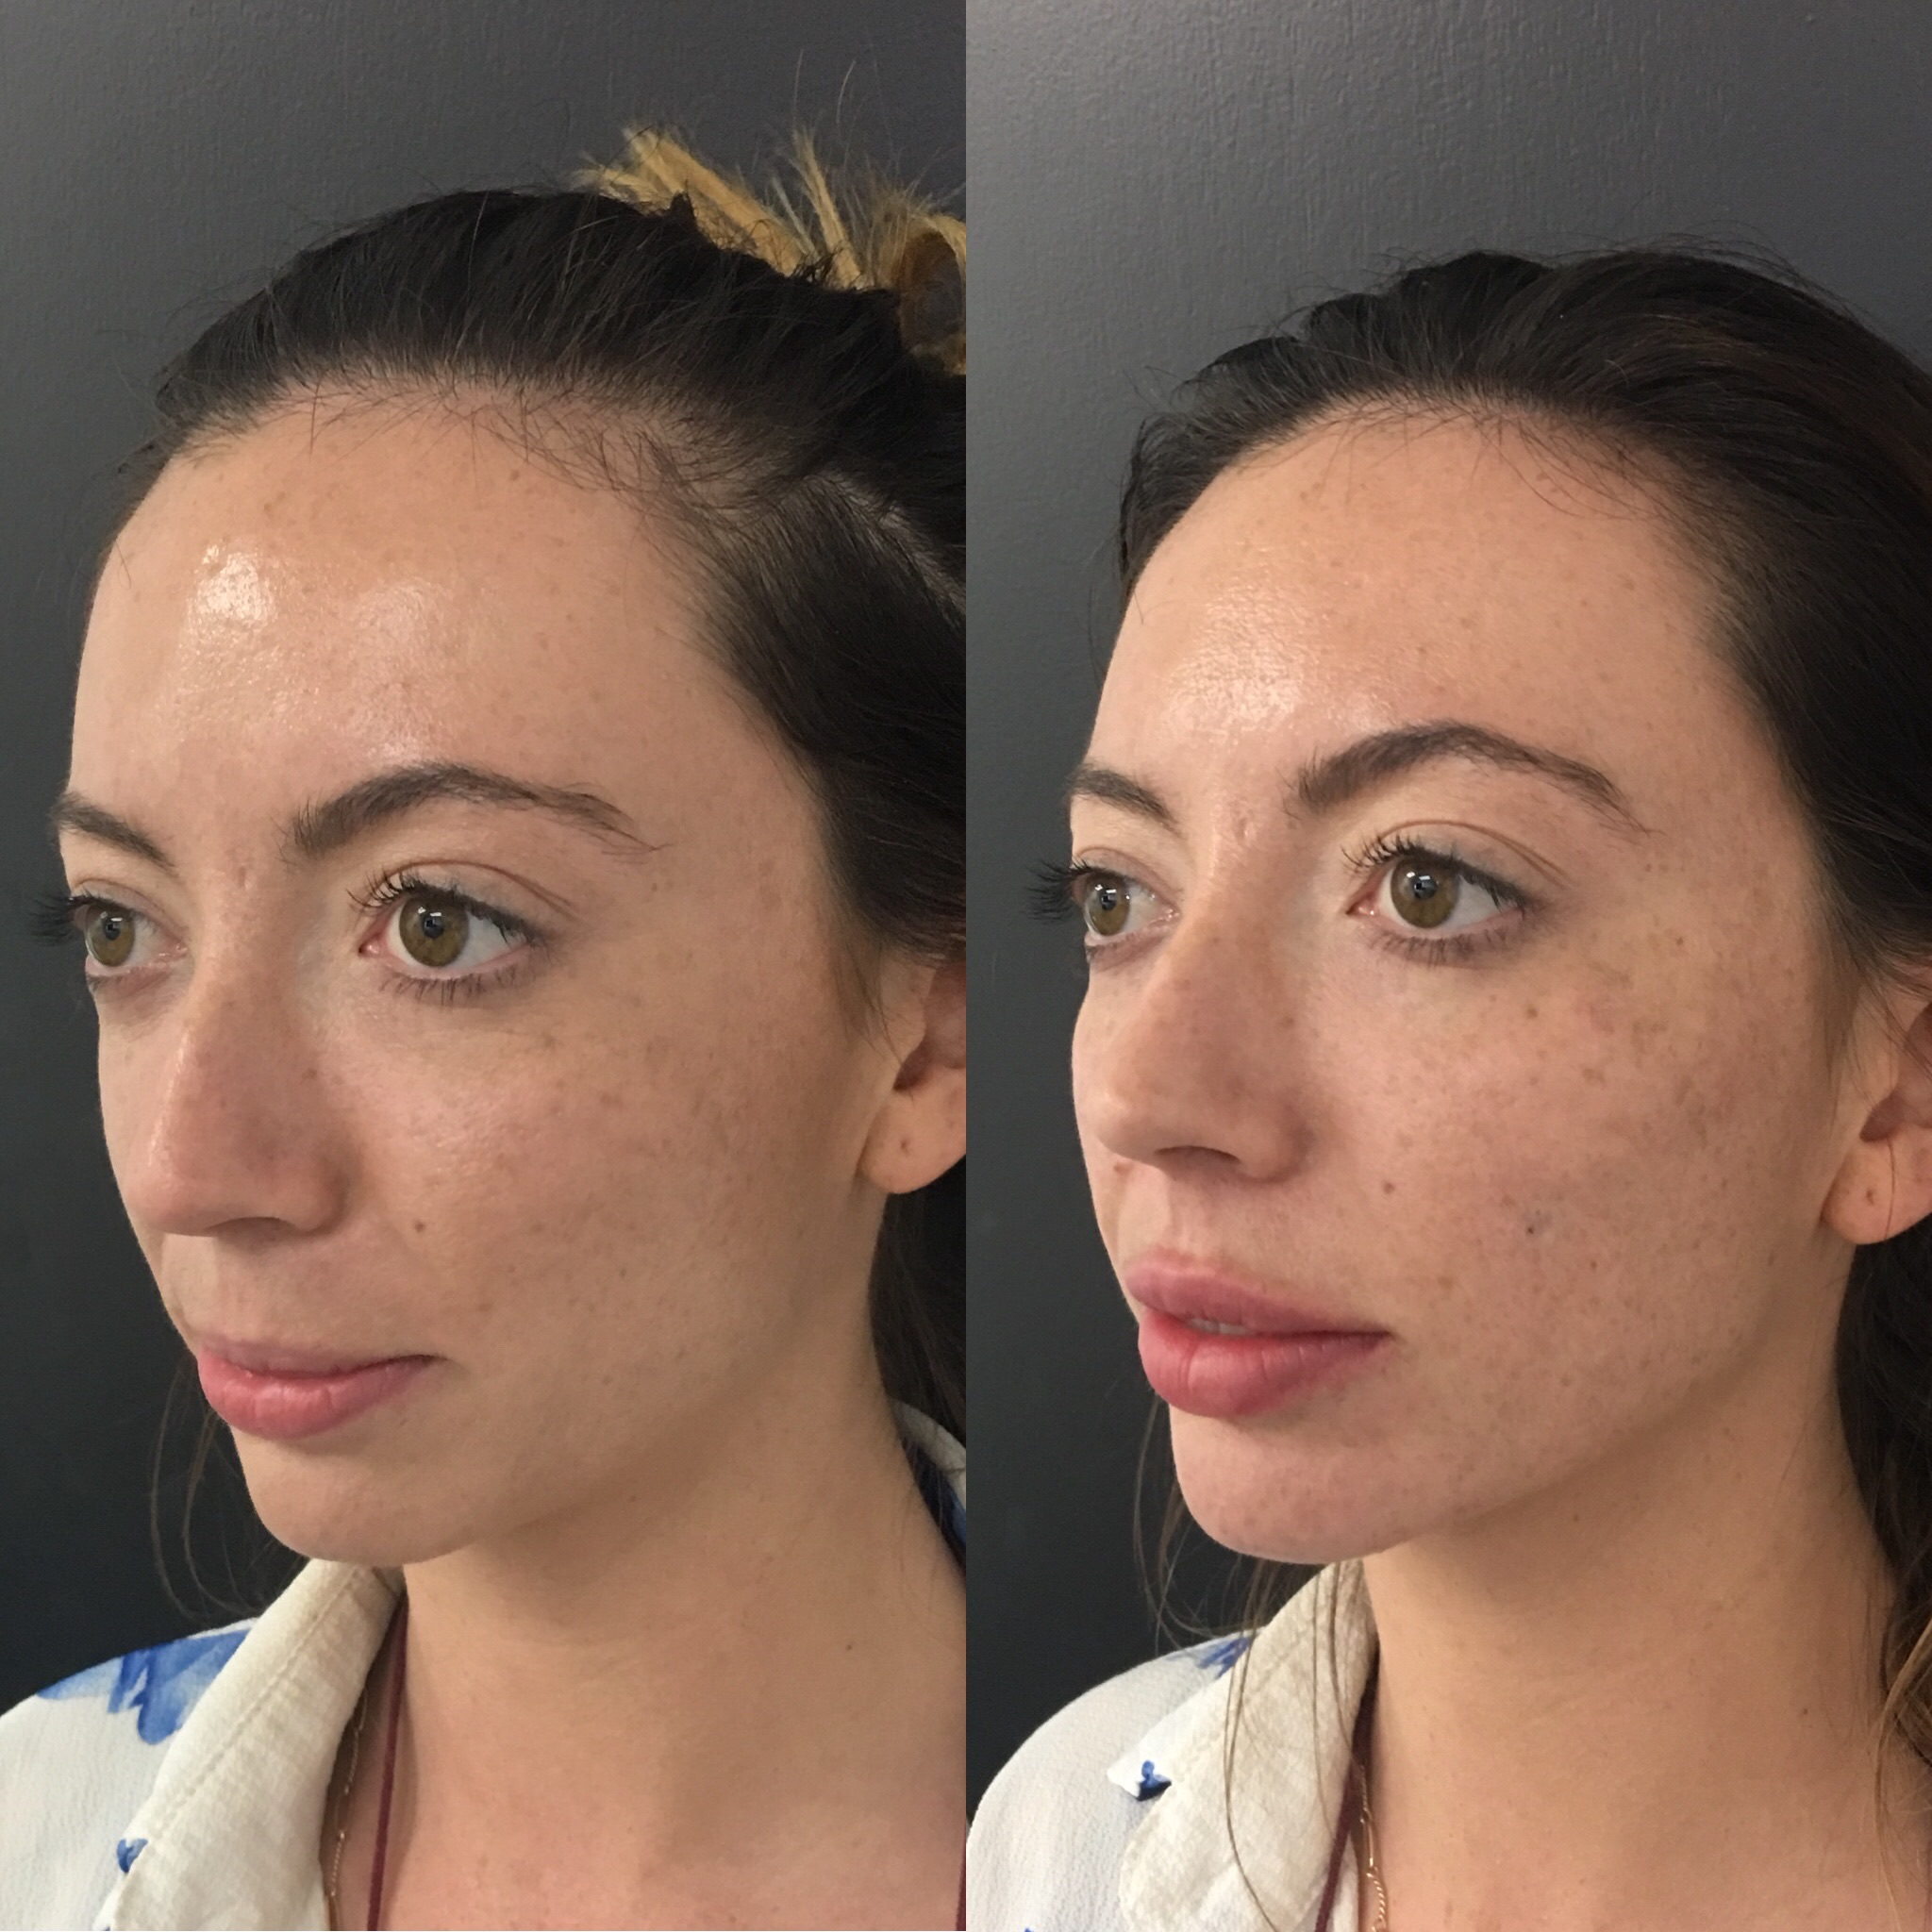 Dermal fillers brisbane face fillers filler injections and chin fillers solutioingenieria Gallery